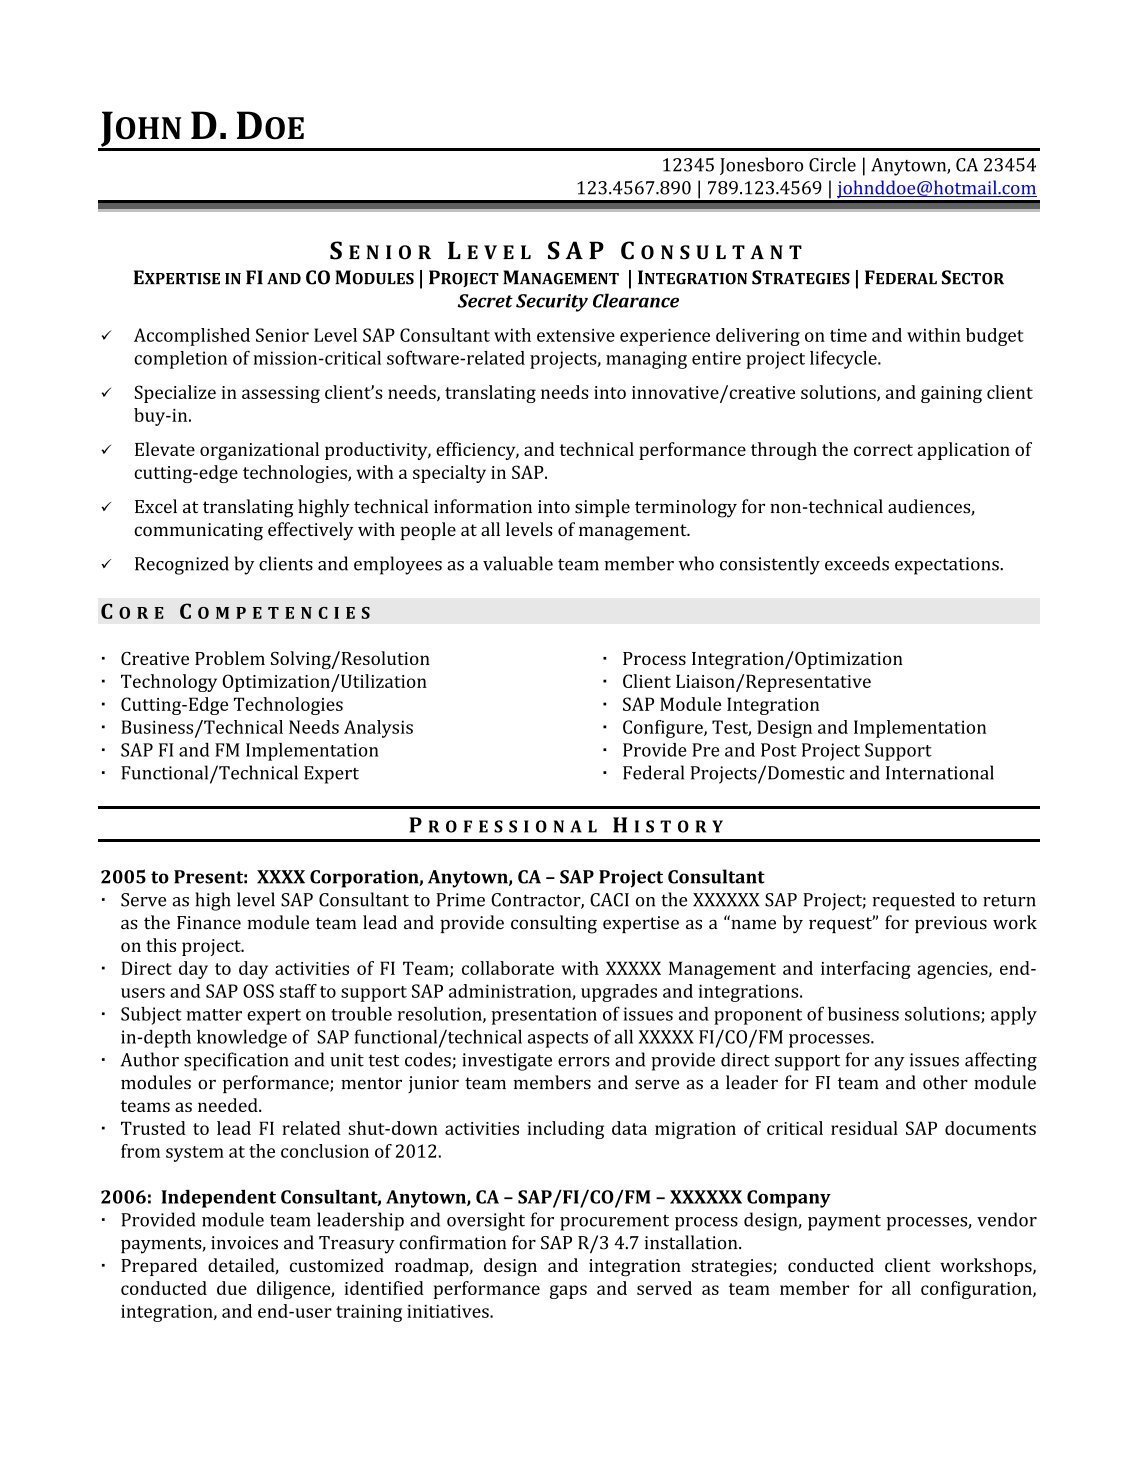 sap crm resume samples free cv format for teacher job technical